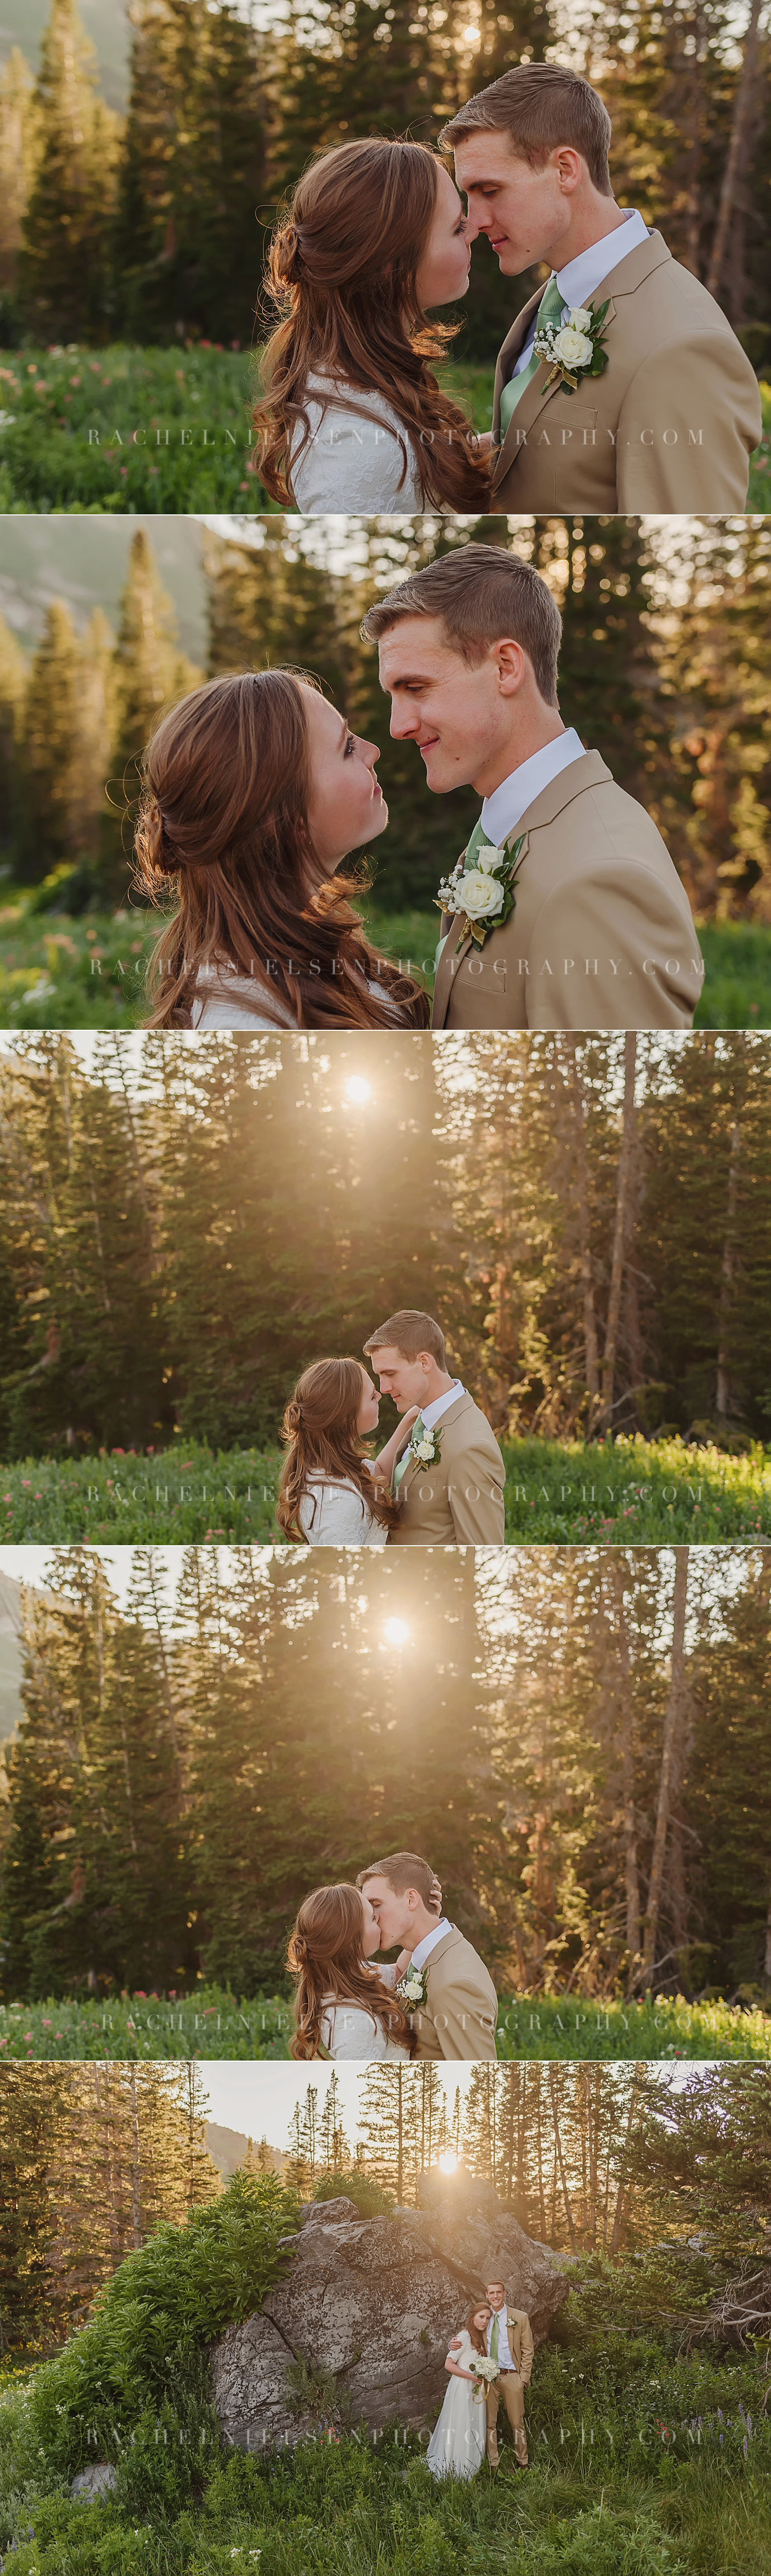 Albion-Basin-Bride-and-Groom-7